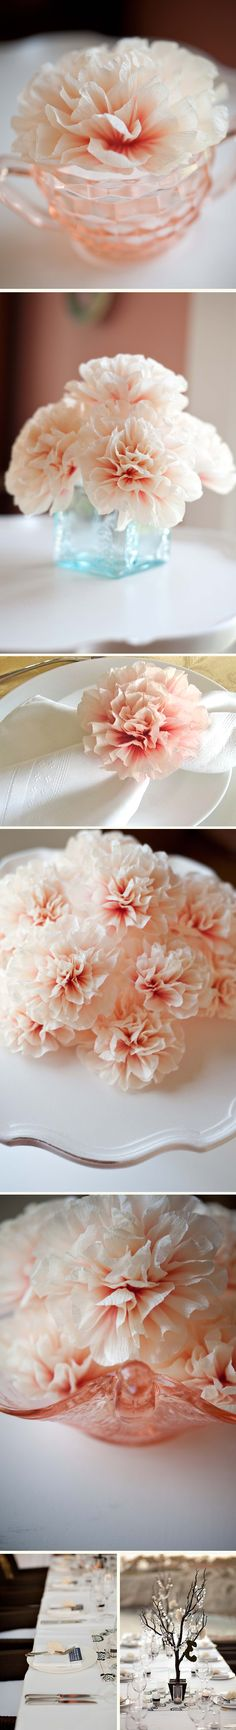 incredible crepe paper carnations..